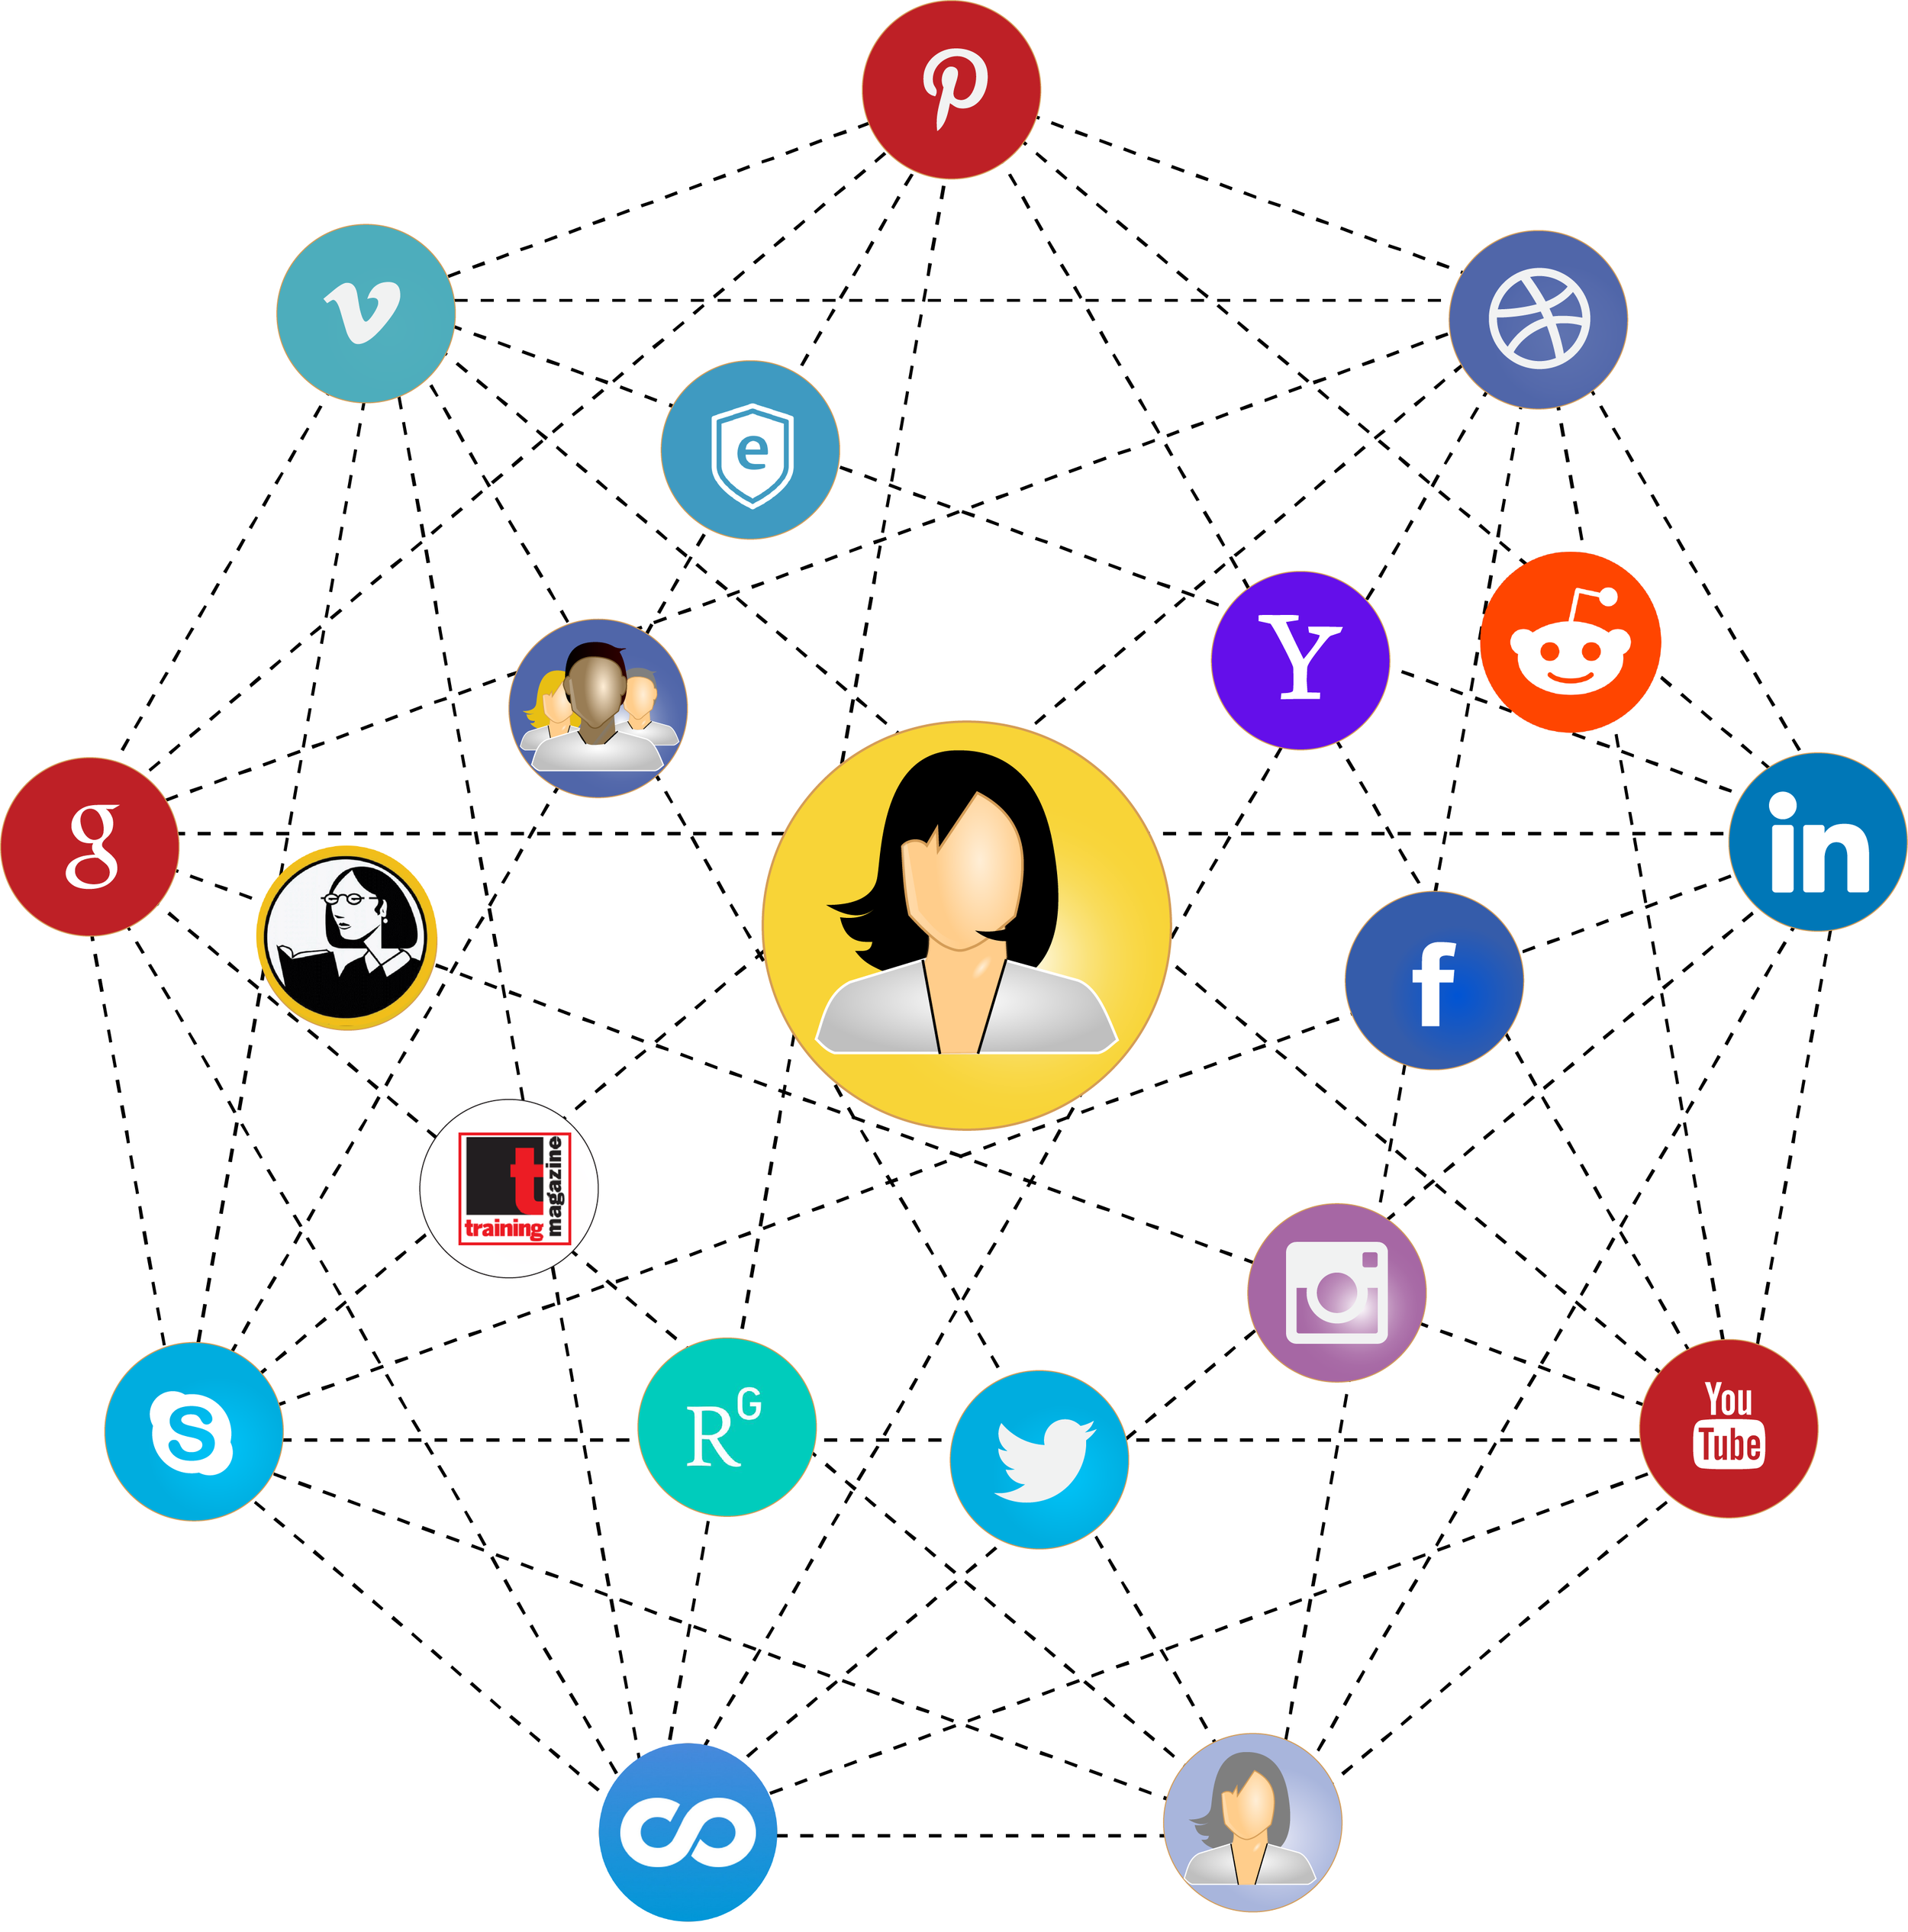 Figure 2: Ideal Personal Learning Network for Deanna Ooley